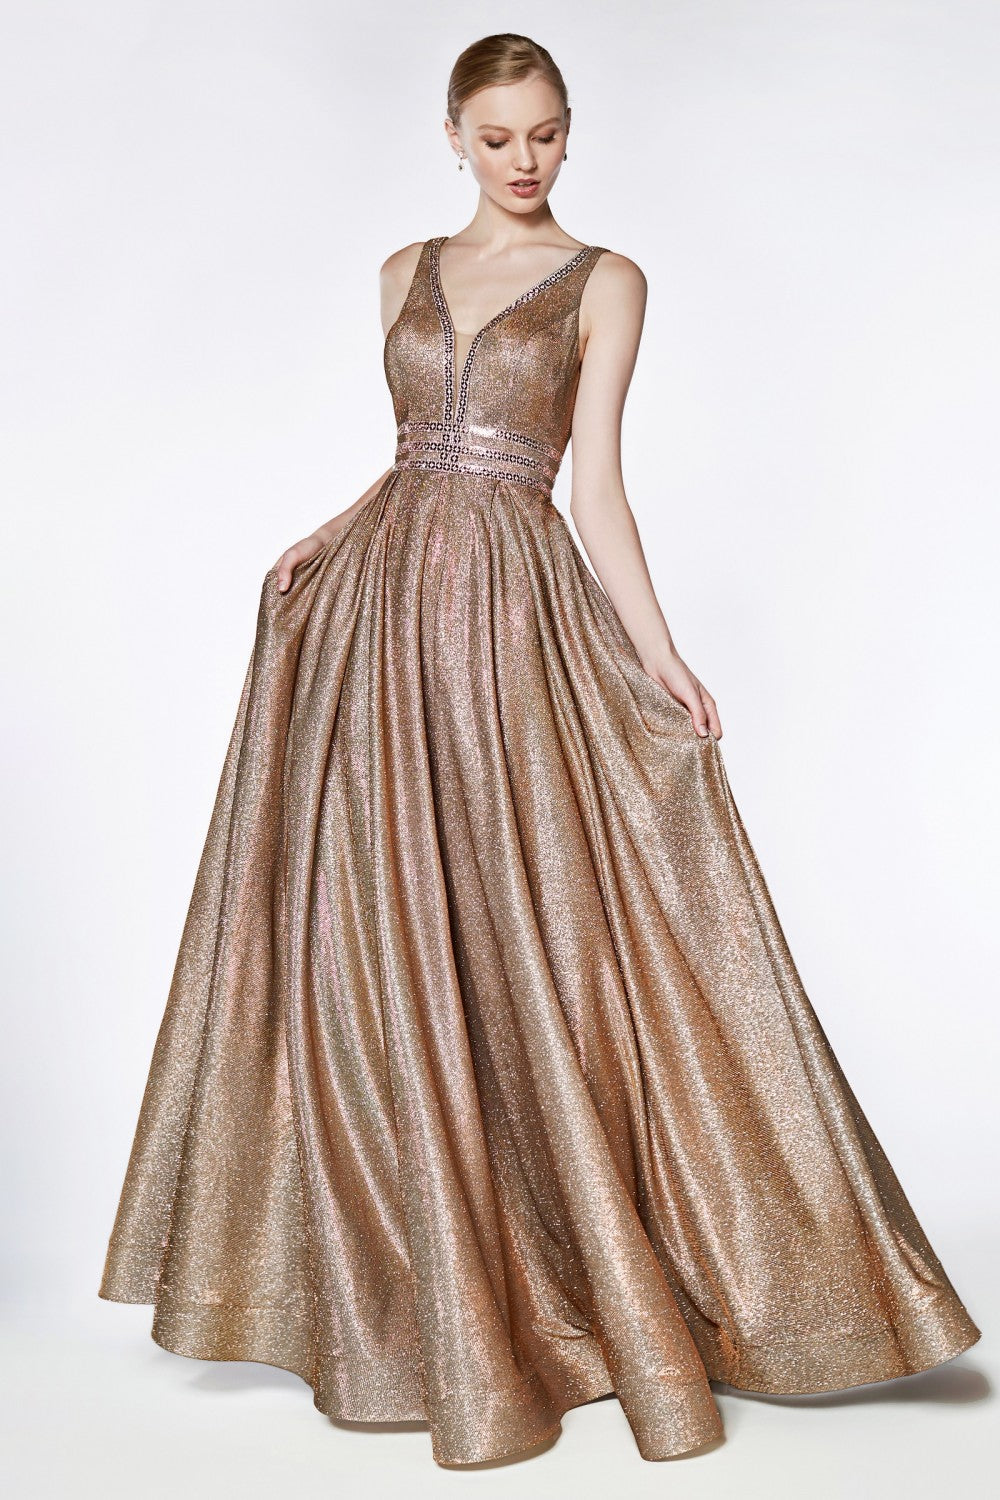 Cinderella Divine Chart I CD CJ 505 - A-Line Metallic Ball Gown with Beaded Bodice Detail & Deep V-Neckline - Diggz Prom